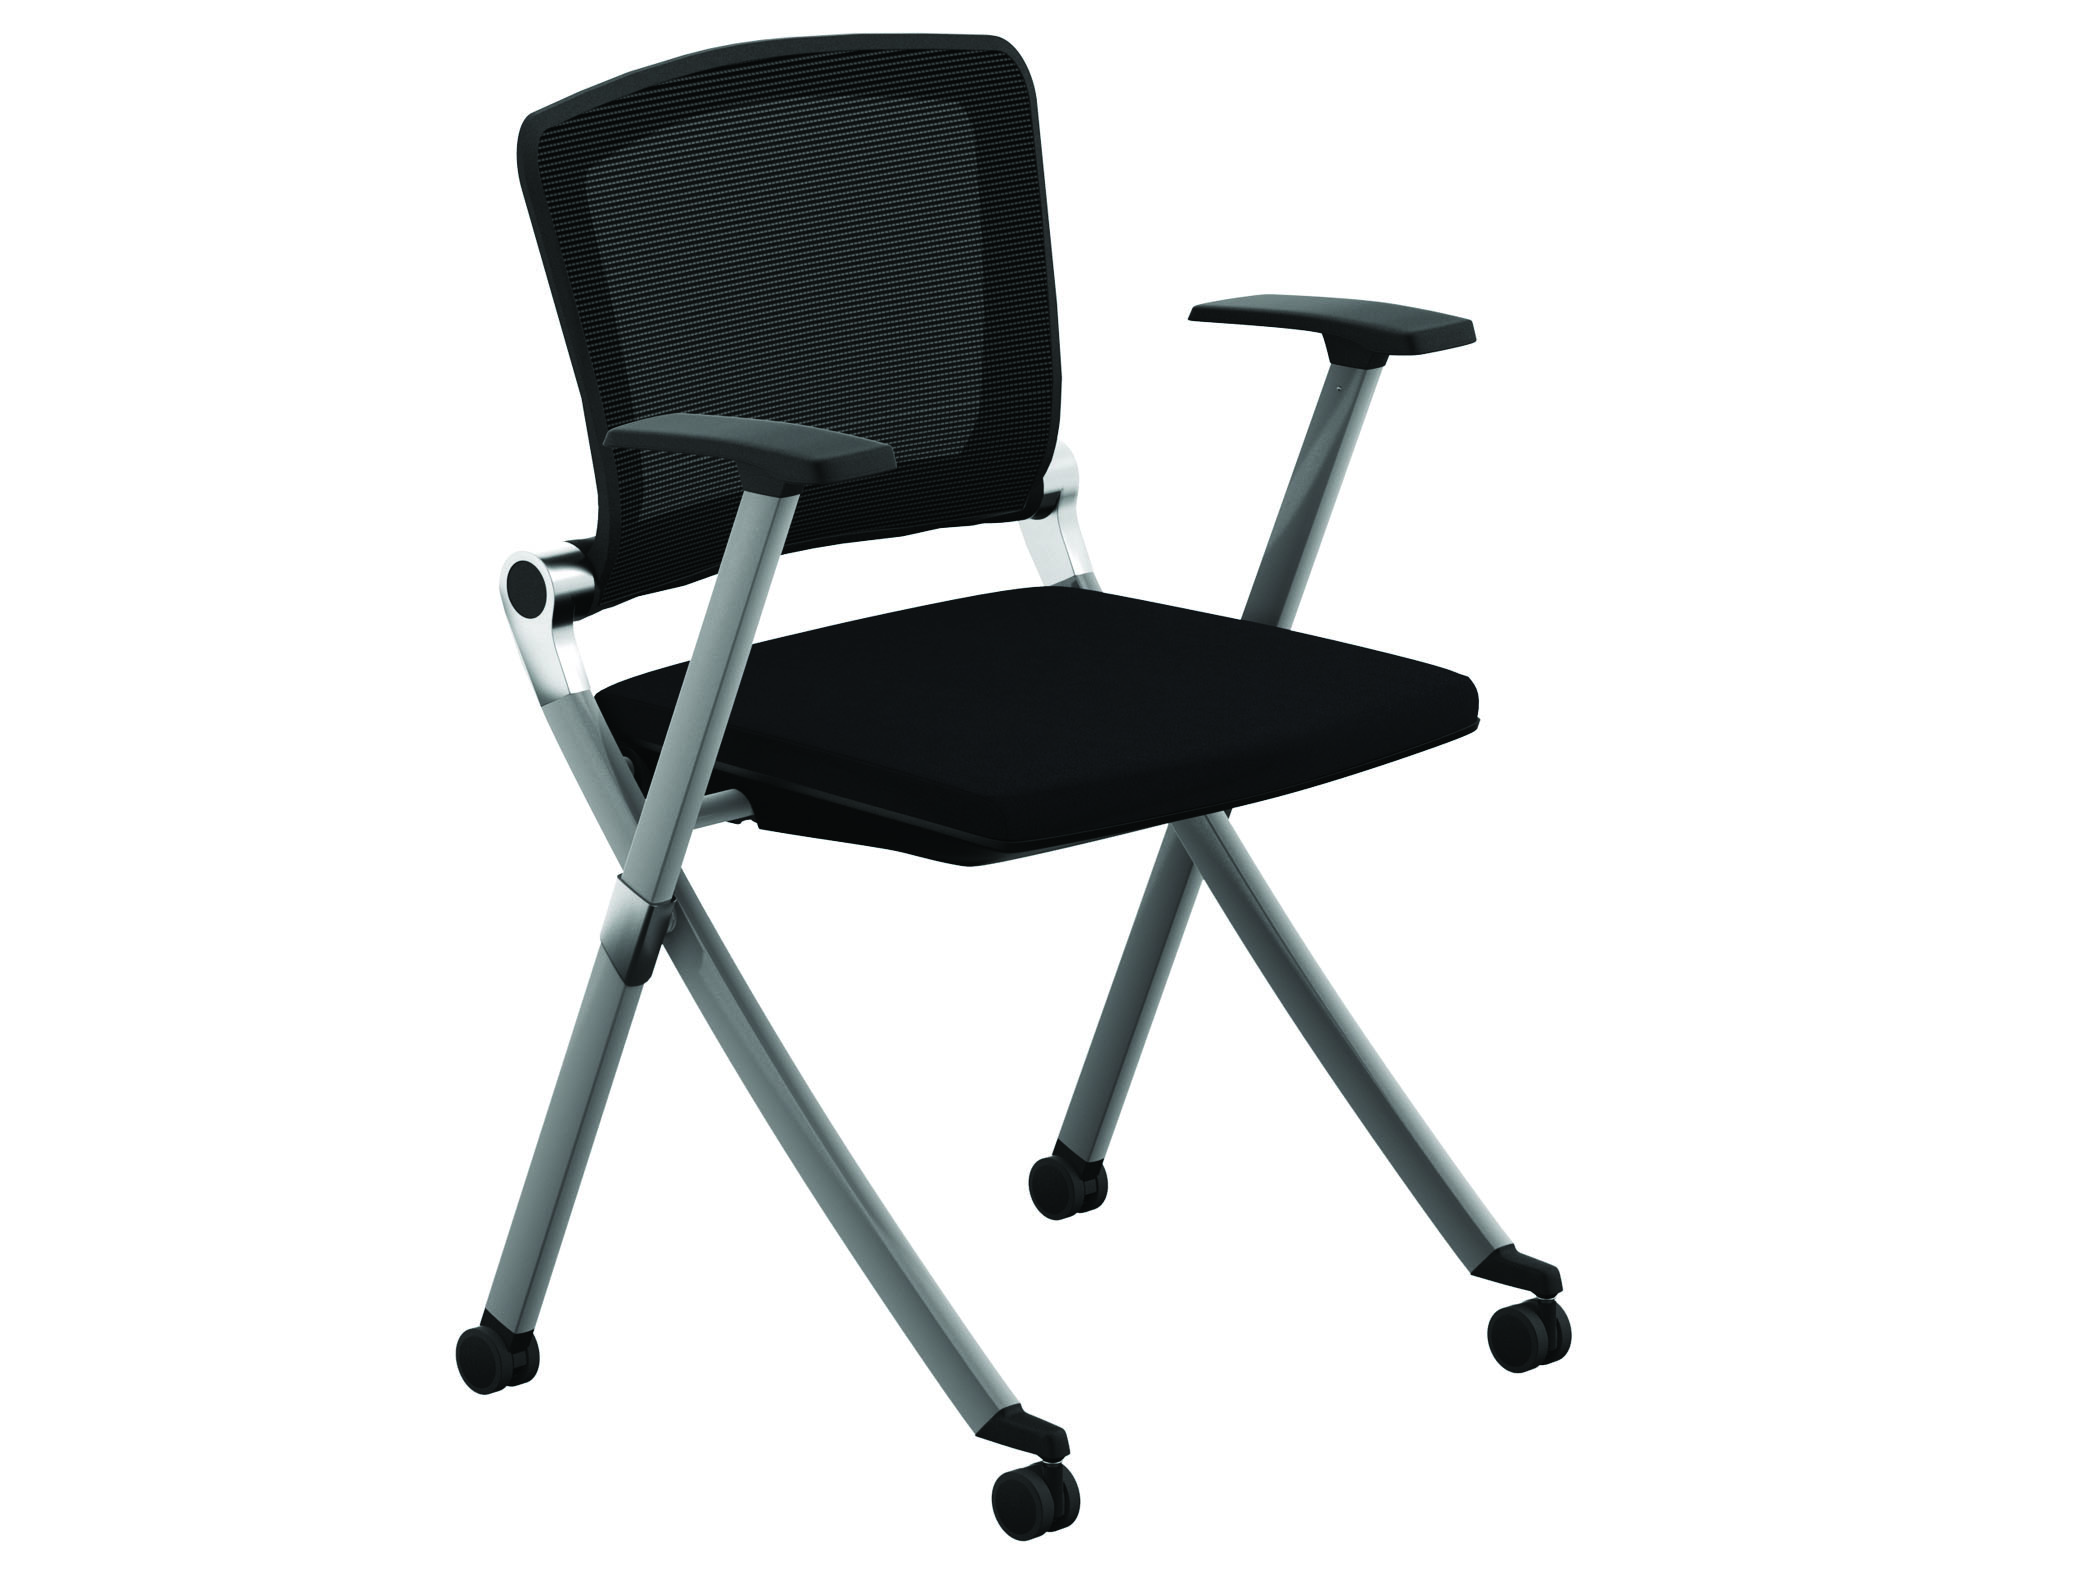 Cubicle Furniture from Compel - Ziggy guest chair